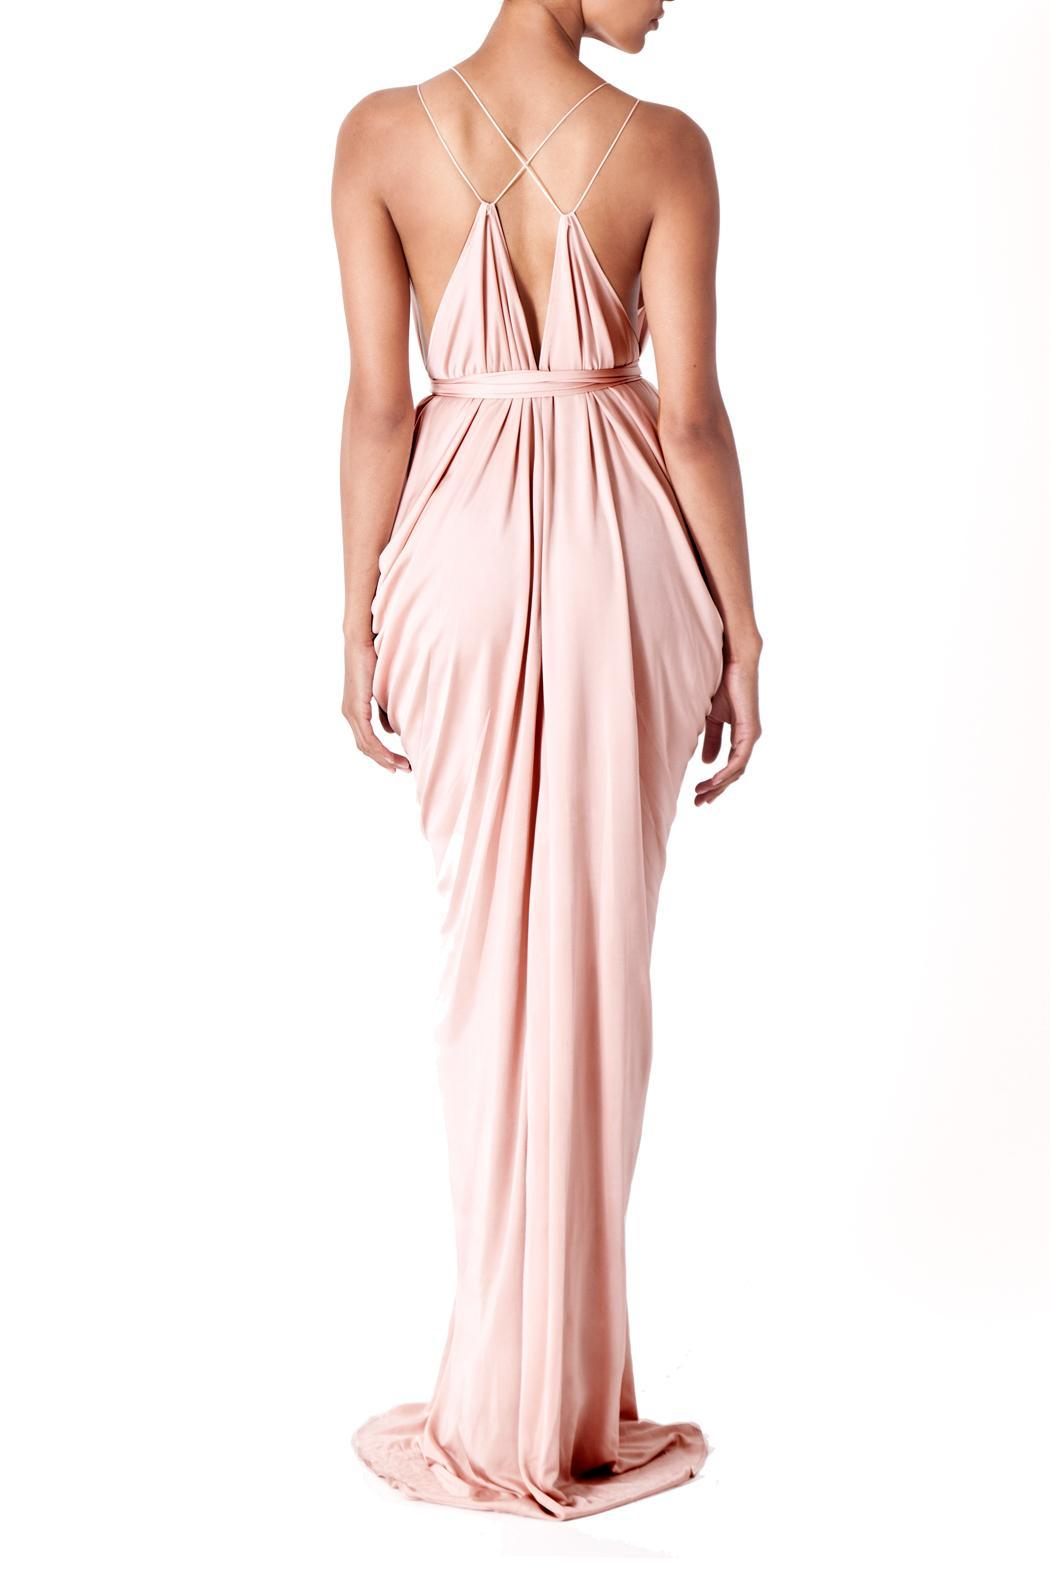 Lois London Blush Bridesmaids Dress - Back Cropped Image